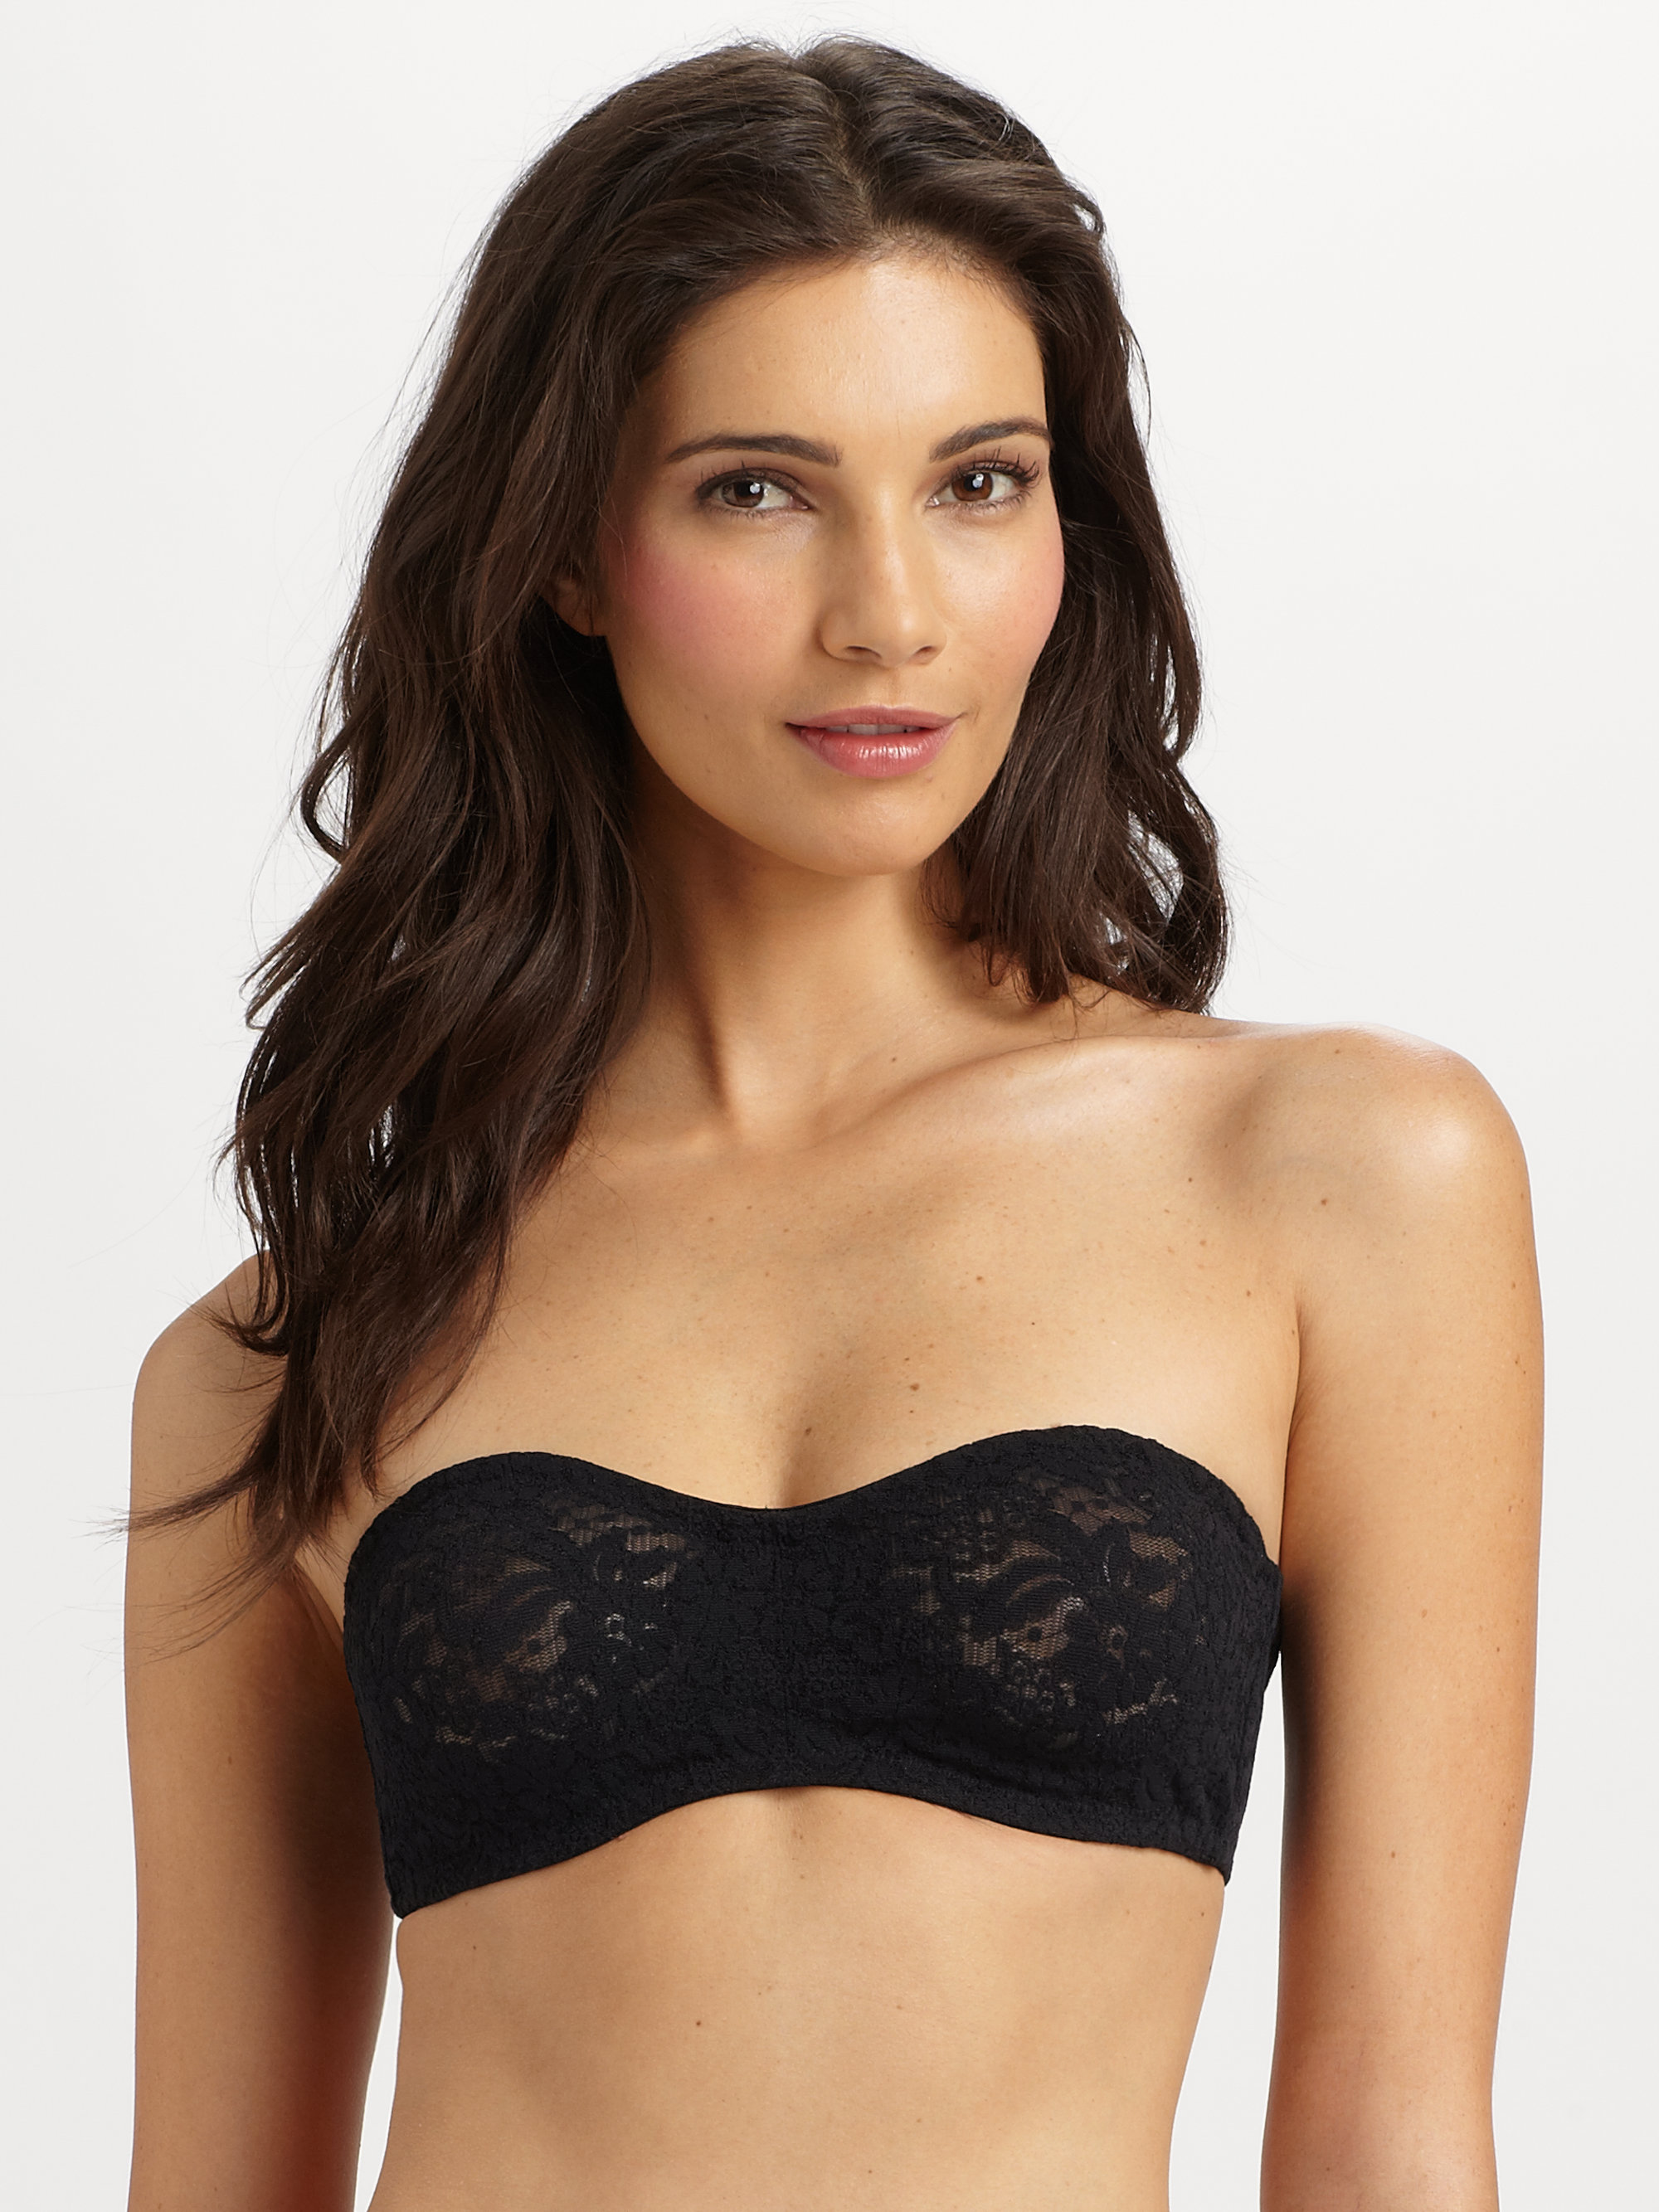 619f707d0b5 Wacoal Halo Moulded Strapless Bra in Black - Lyst